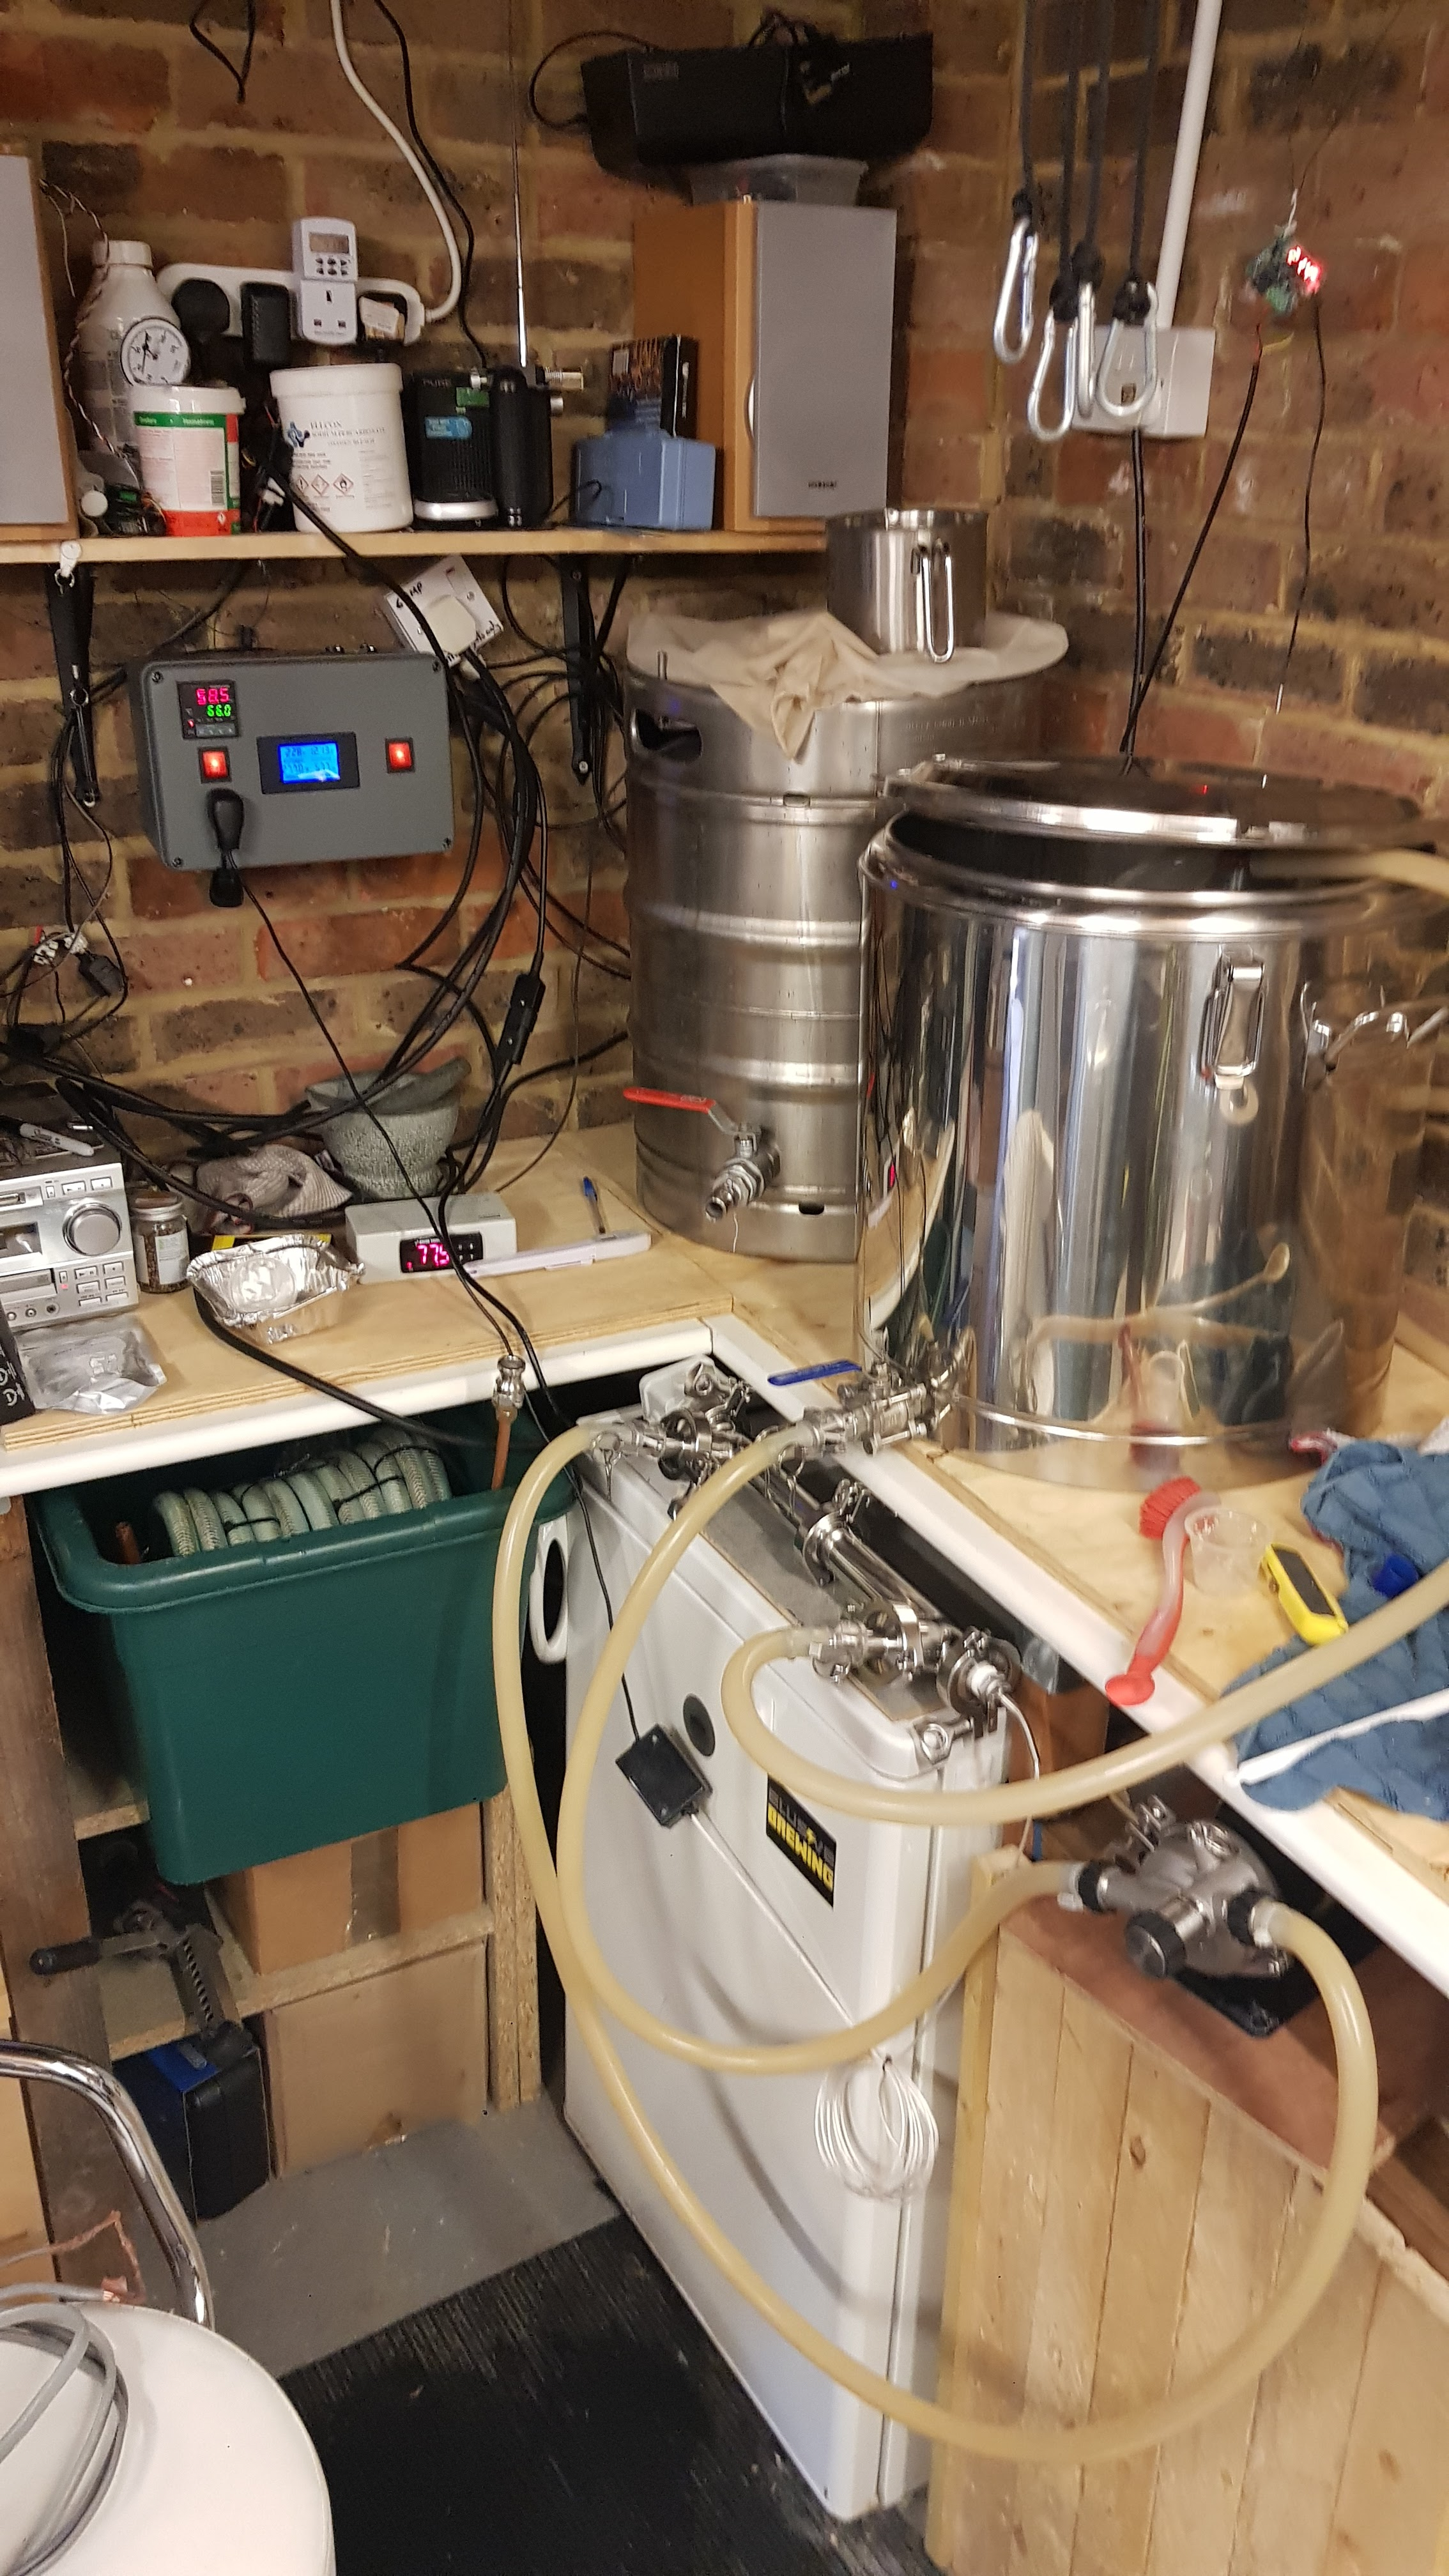 Image of a RIMS tube and control panel in a home brewery setting